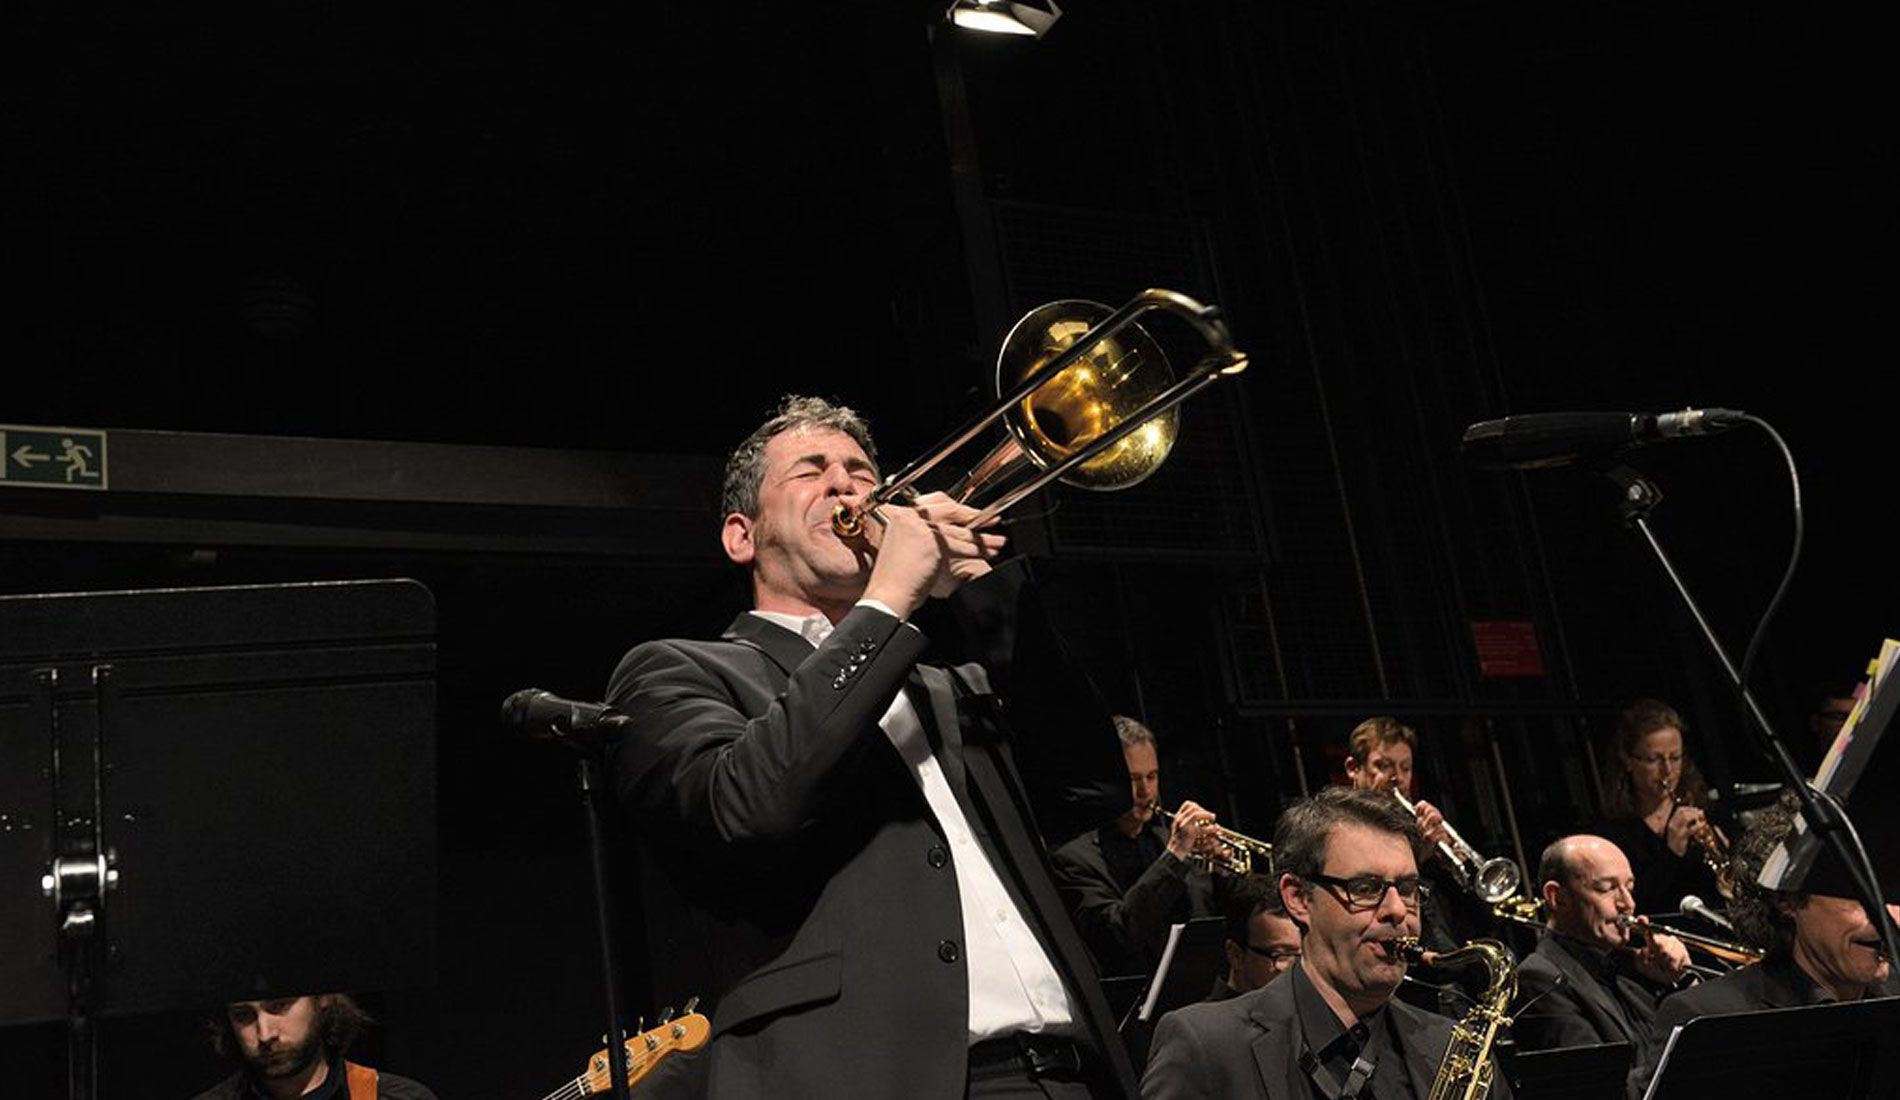 ABGESAGT:  Niente-Jazz Open-Air Konzert mit der Intercity Big Band